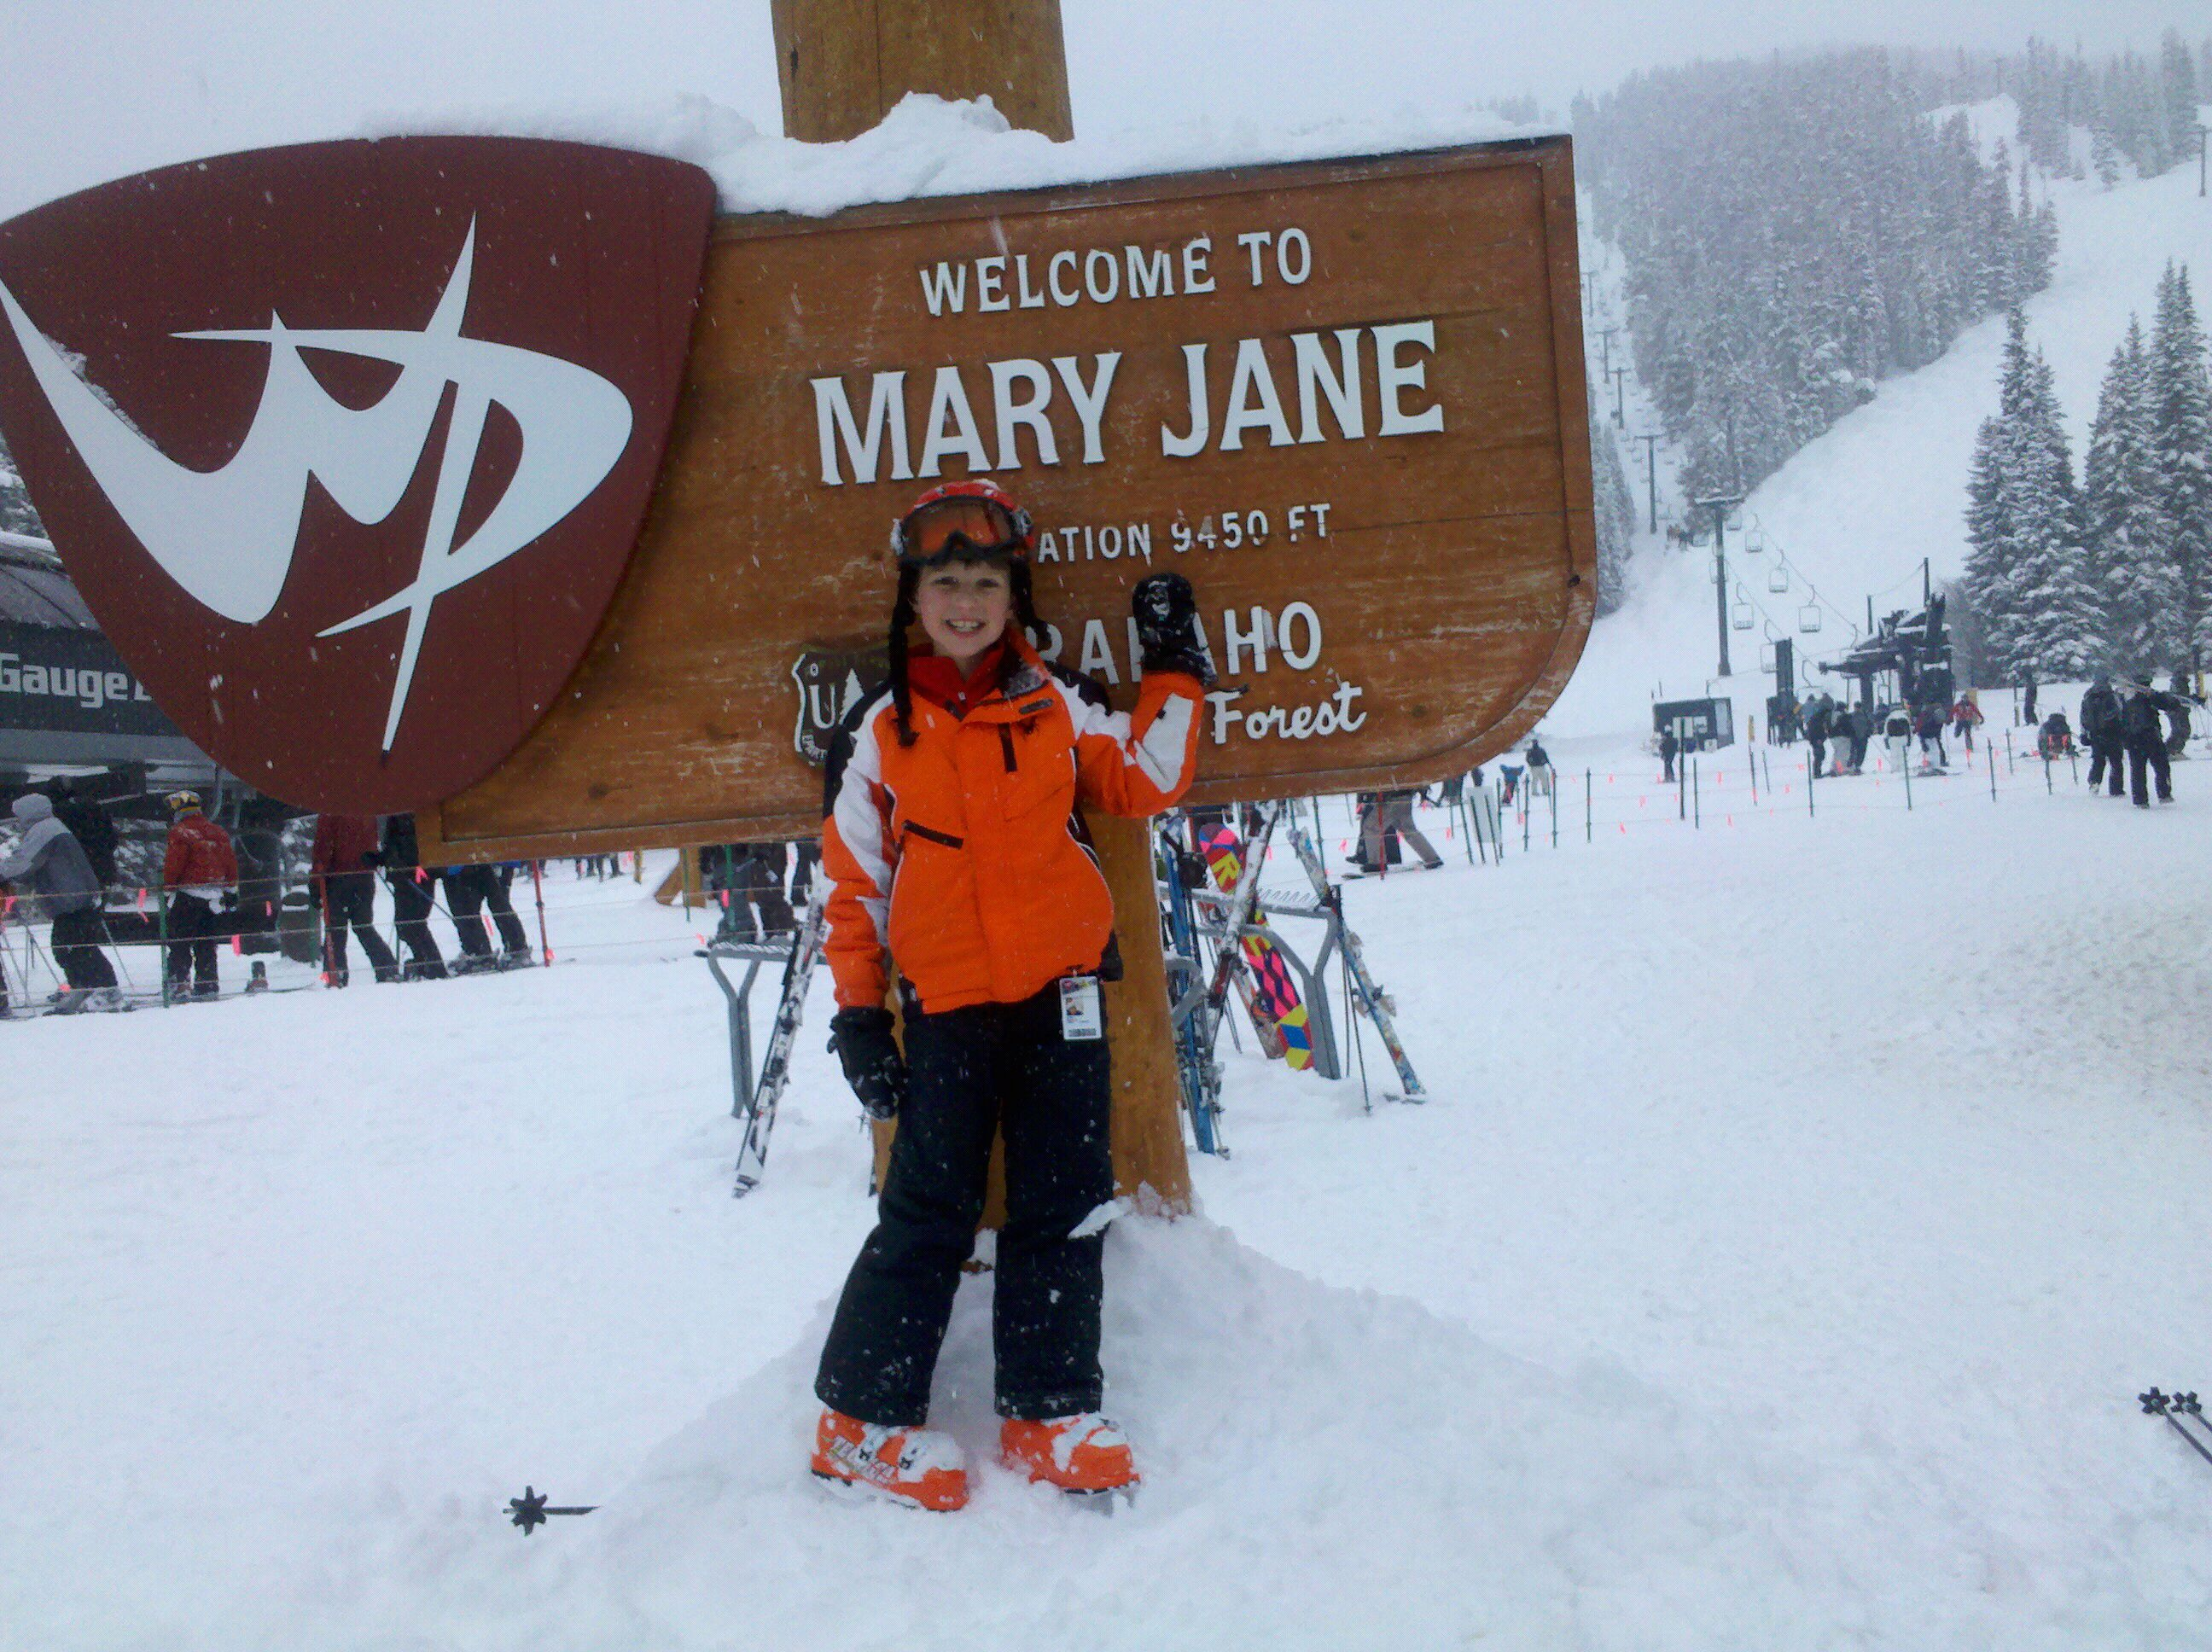 Mary Jane, Winter Park, Powder skis, rental skis, snowoard rental, kids rental